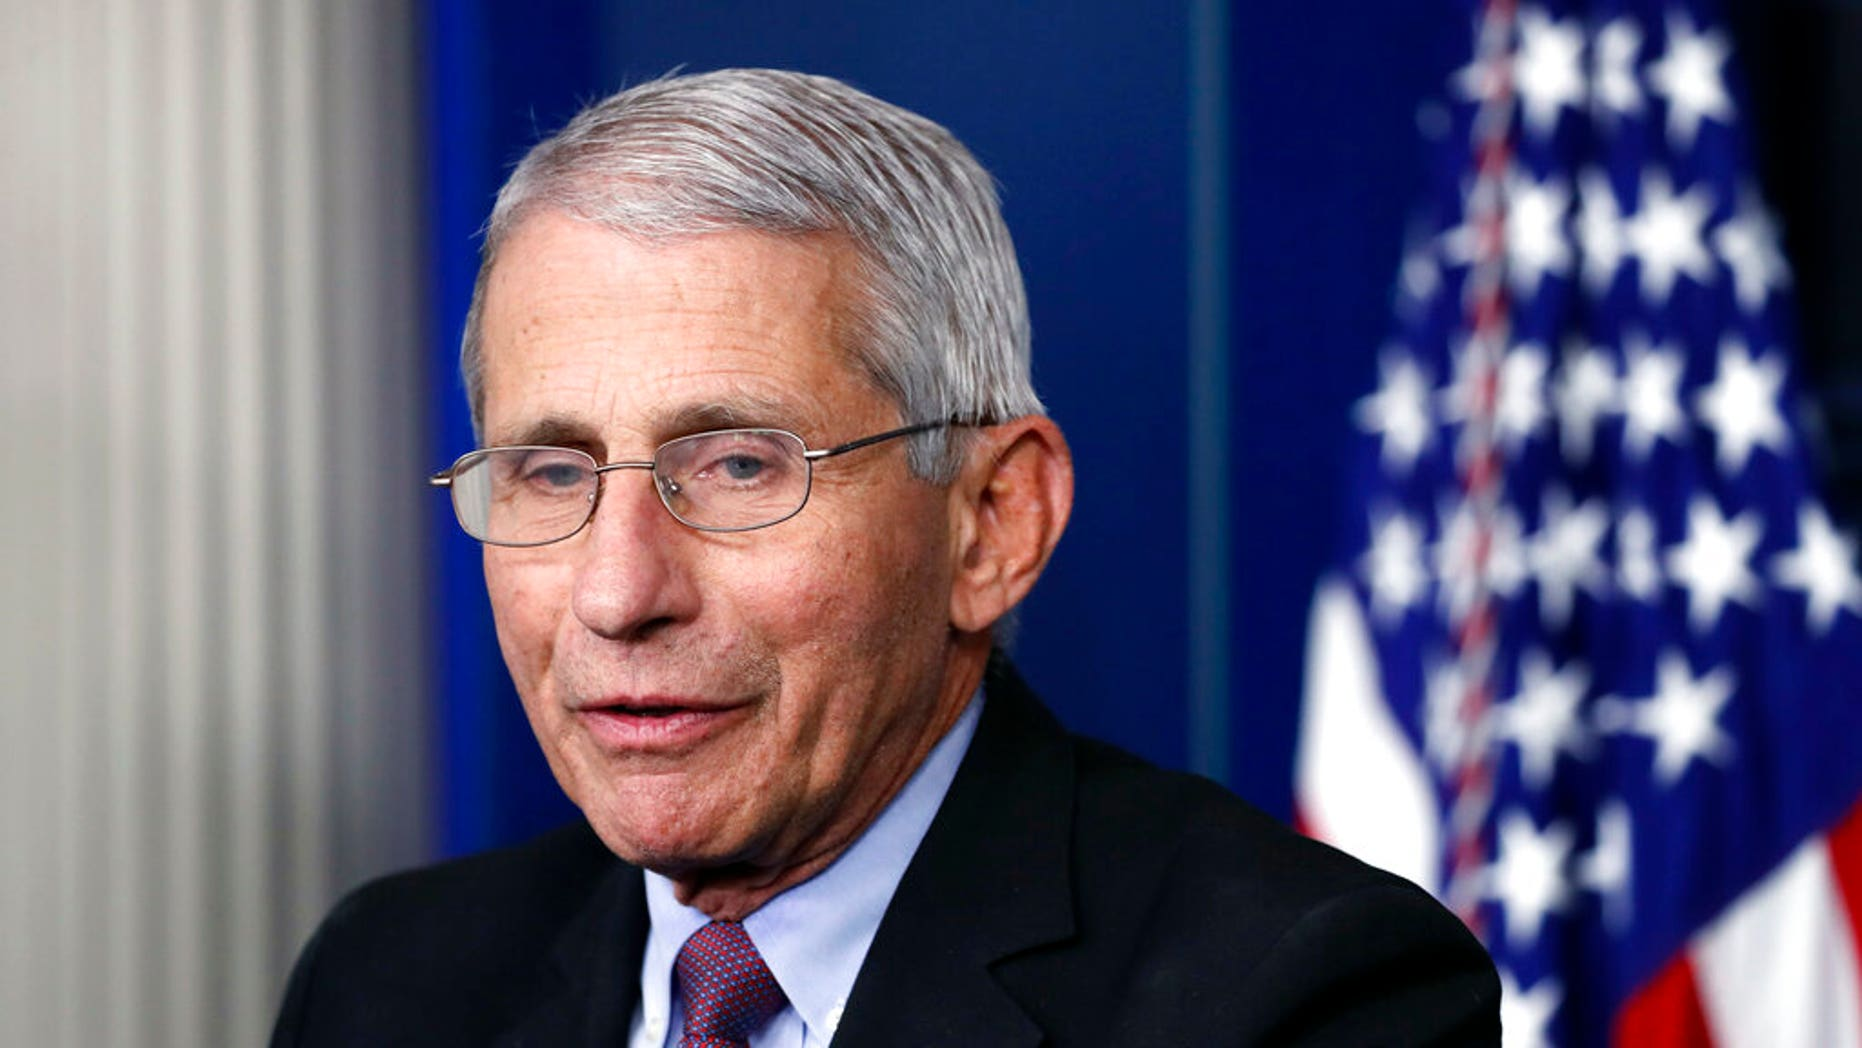 FILE -Dr. Anthony Fauci, director of the National Institute of Allergy and Infectious Diseases. (AP Photo/Alex Brandon, File)